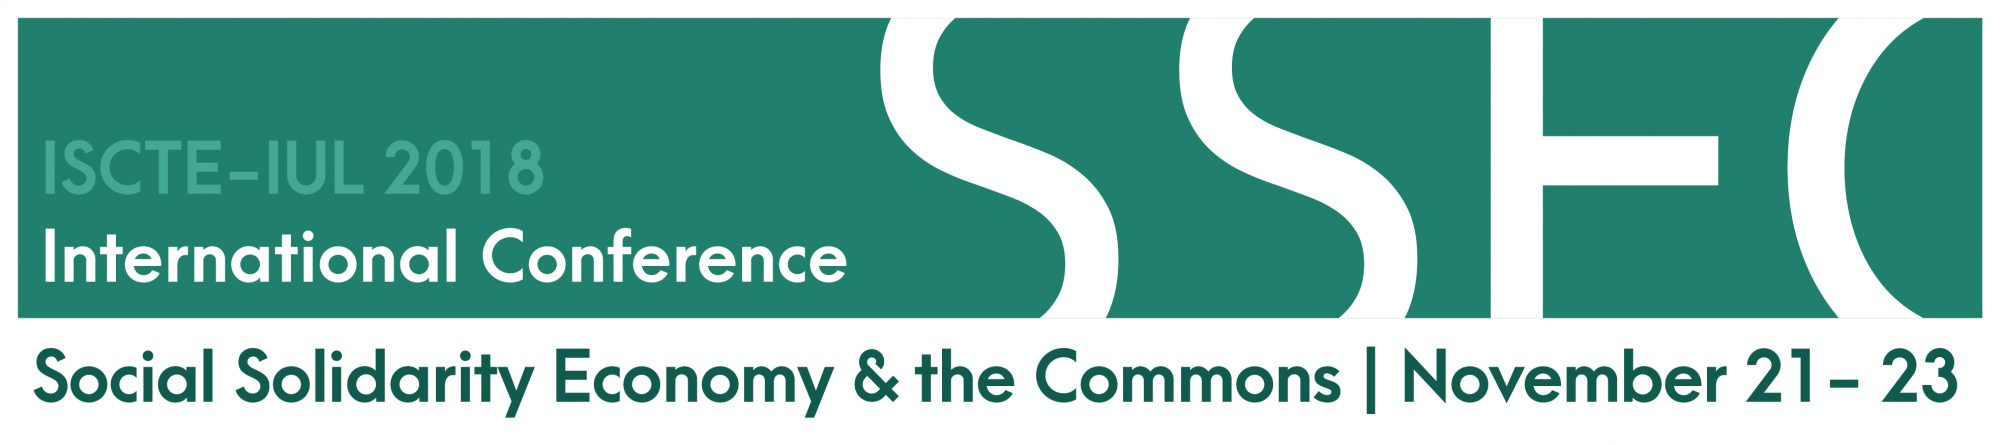 Social Solidarity Economy and the Commons     November 21-23